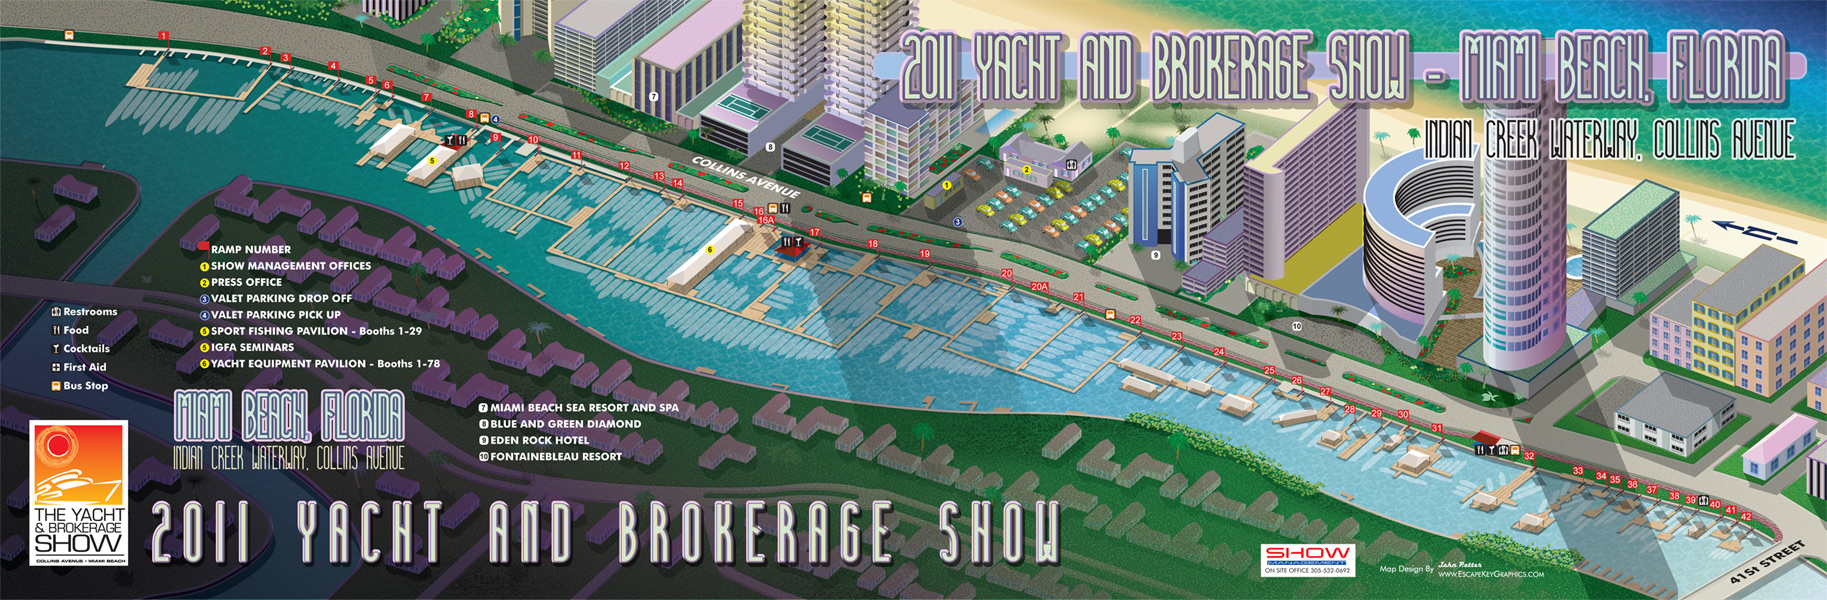 Miami Boat Show Map